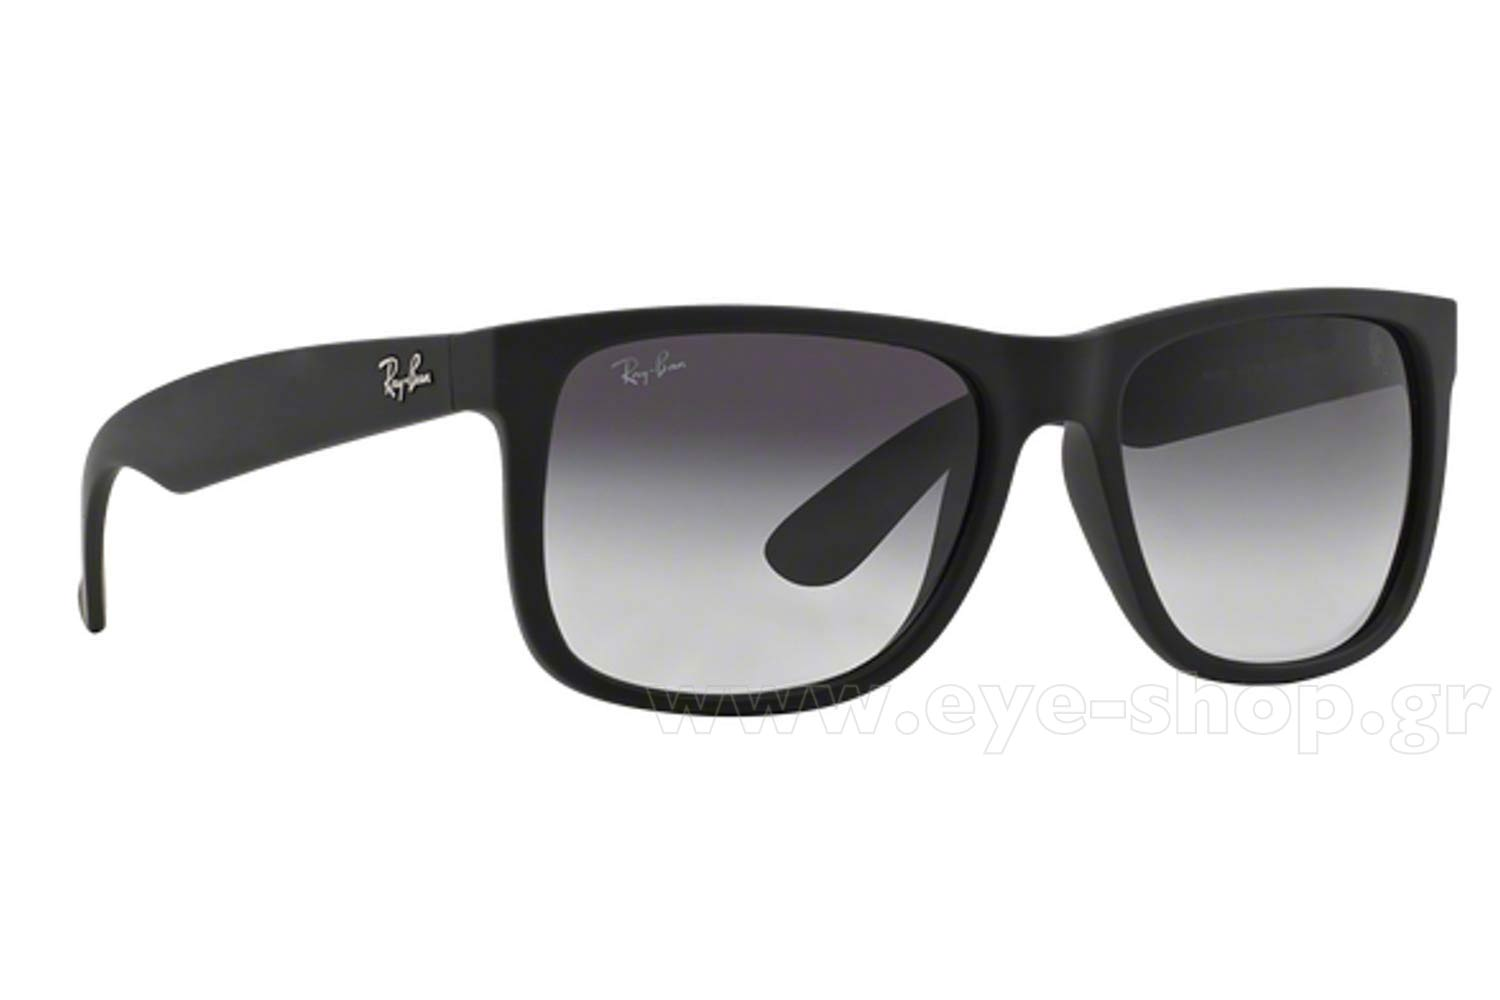 a6163441b9 EMILY-BLUNT WEARING SUNGLASSES RAYBAN-4165-YOUNGSTER sunglasses 601 8G - 54